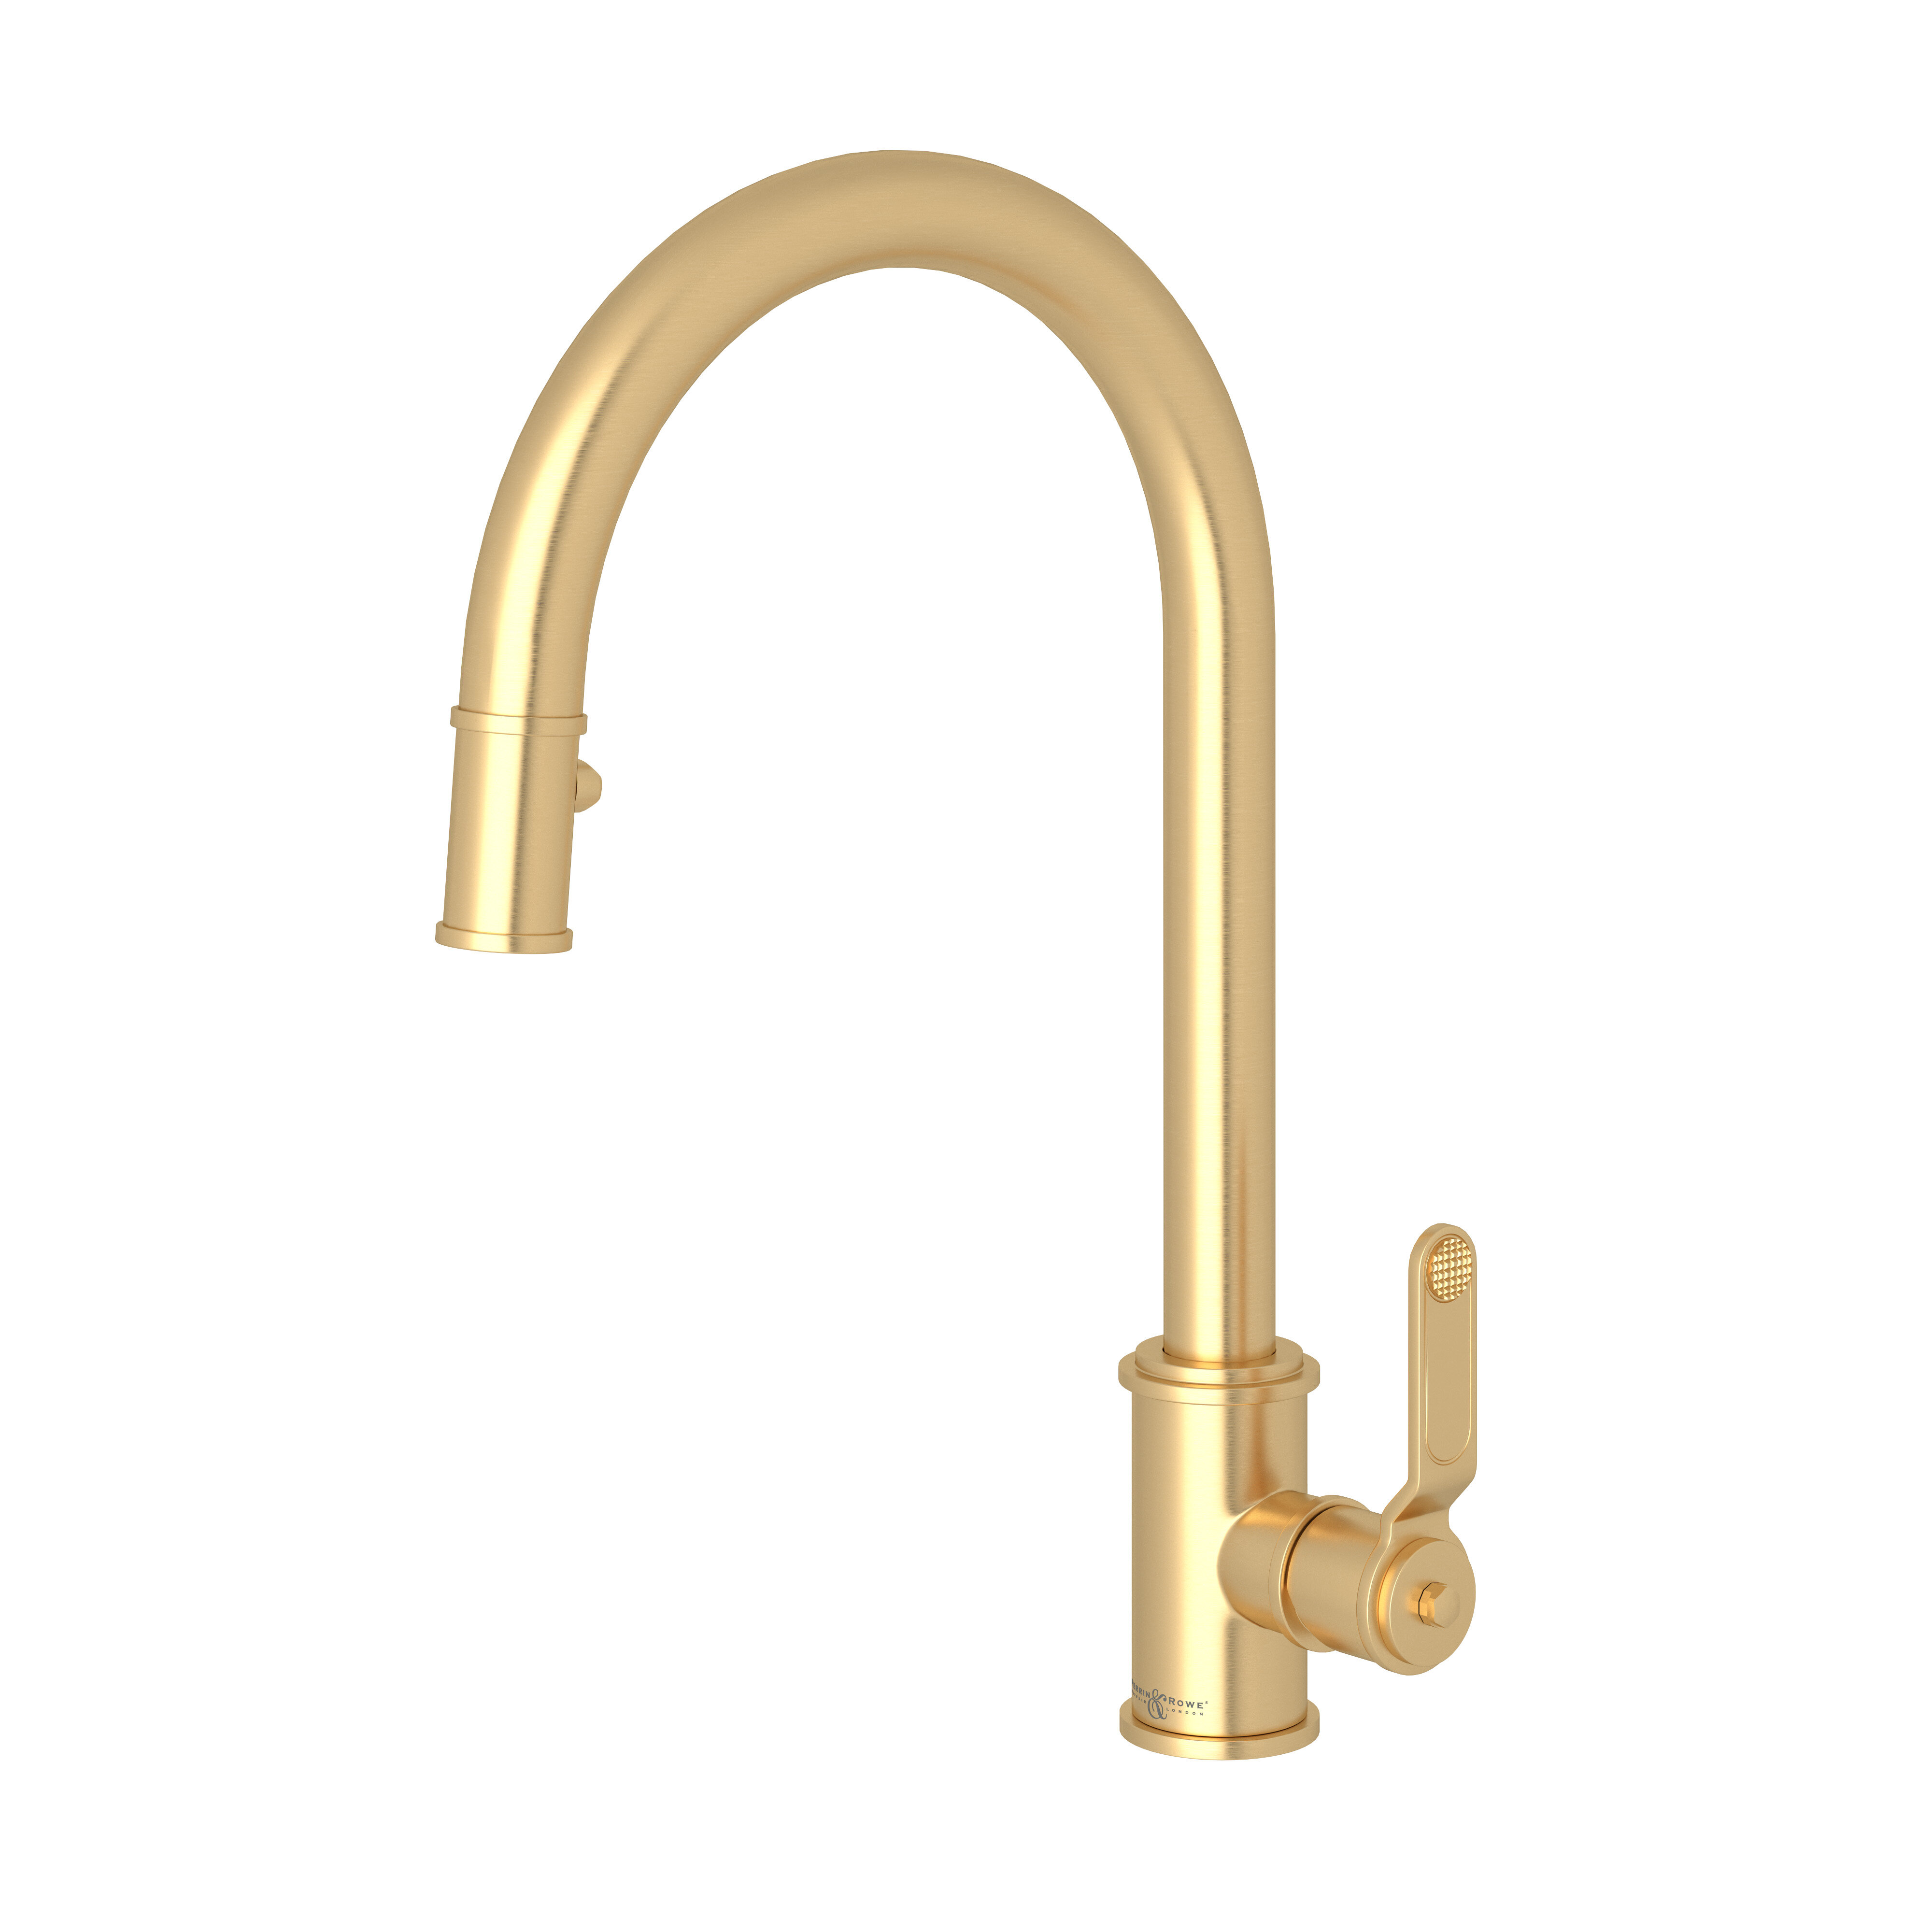 Perrin Rowe Armstrong Pull Down Kitchen Faucet